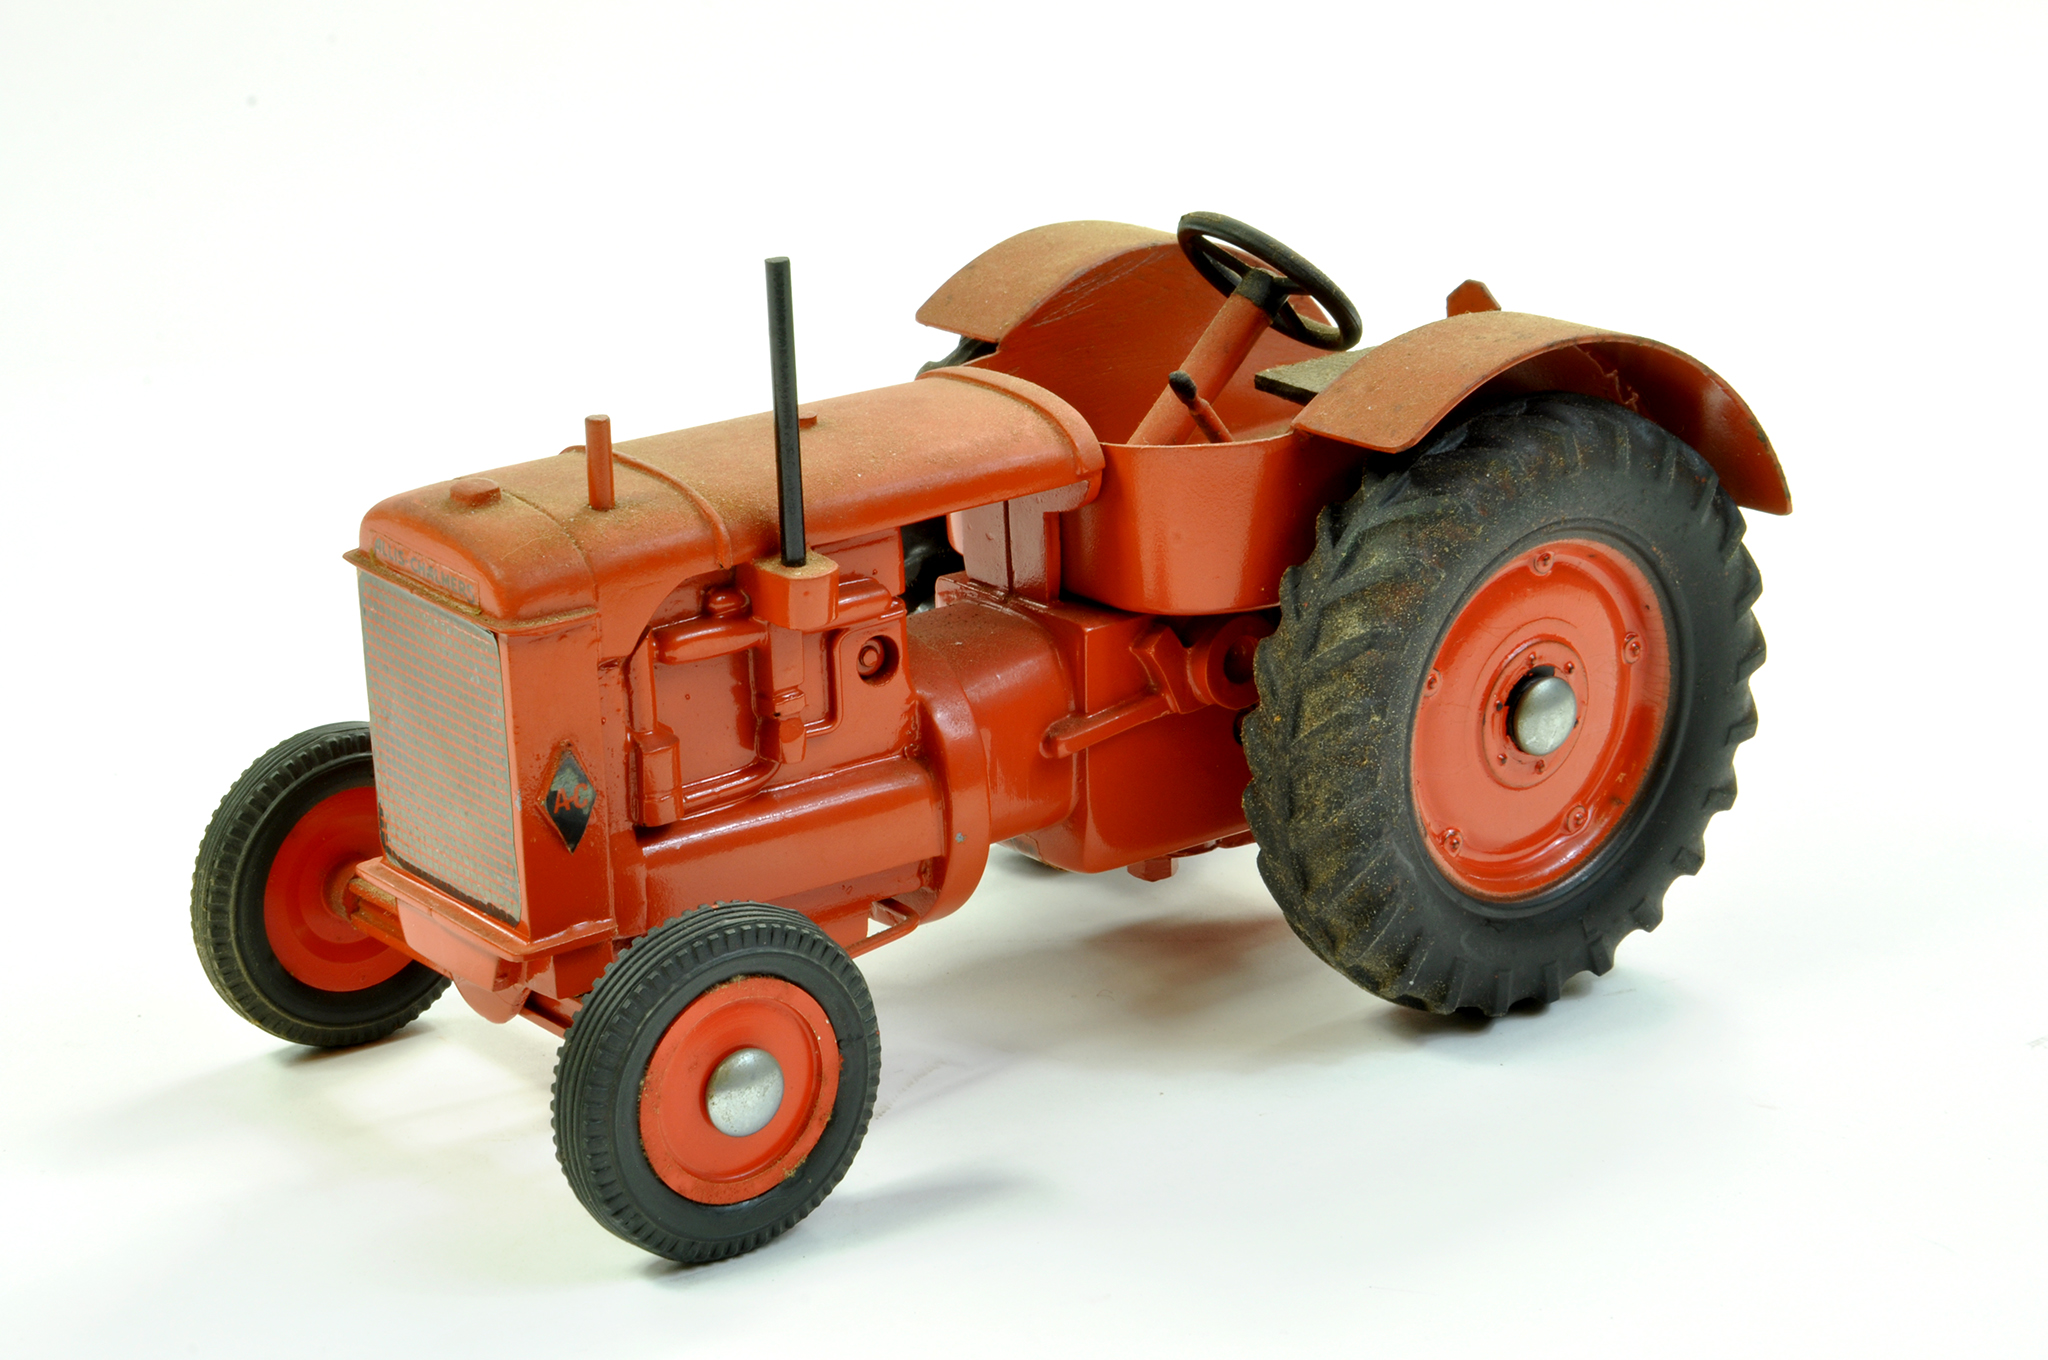 Lot 16 - Marbil Models 1/16 Allis Chalmers AC Vintage Tractor on Rubber Tyres. Generally excellent however